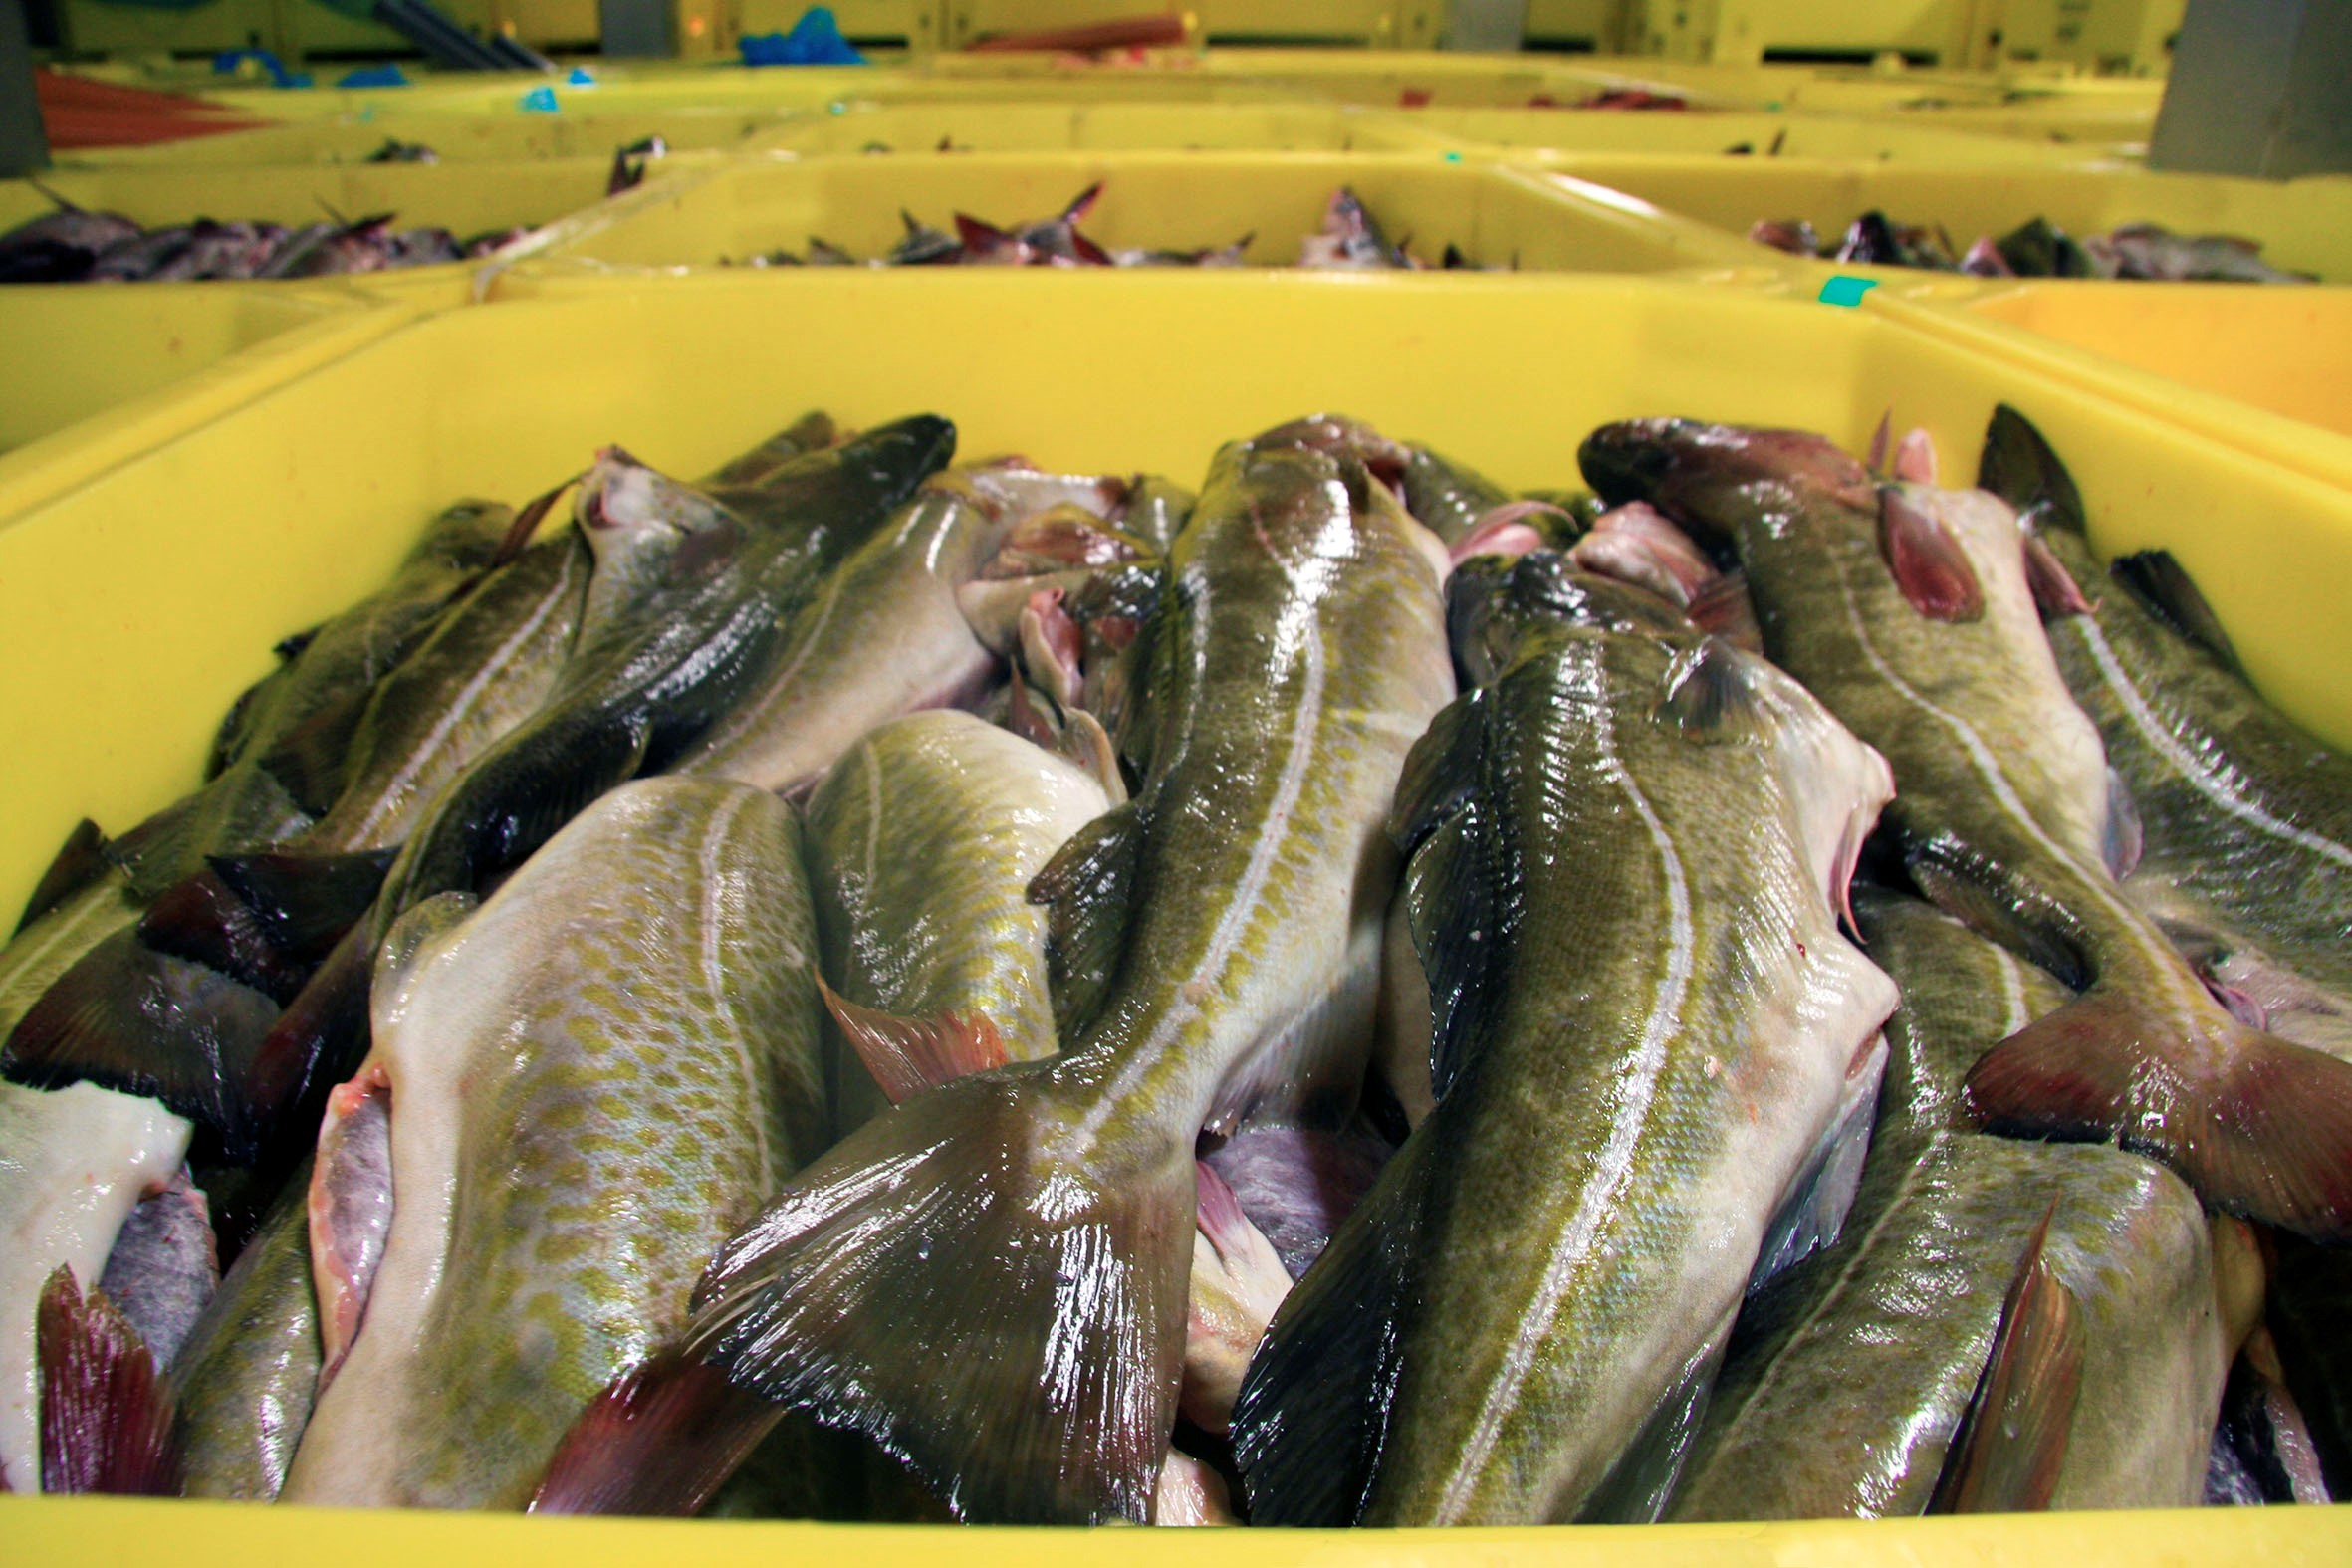 In Málmey - Fish is stored in tubs without Ice in the fish hold.